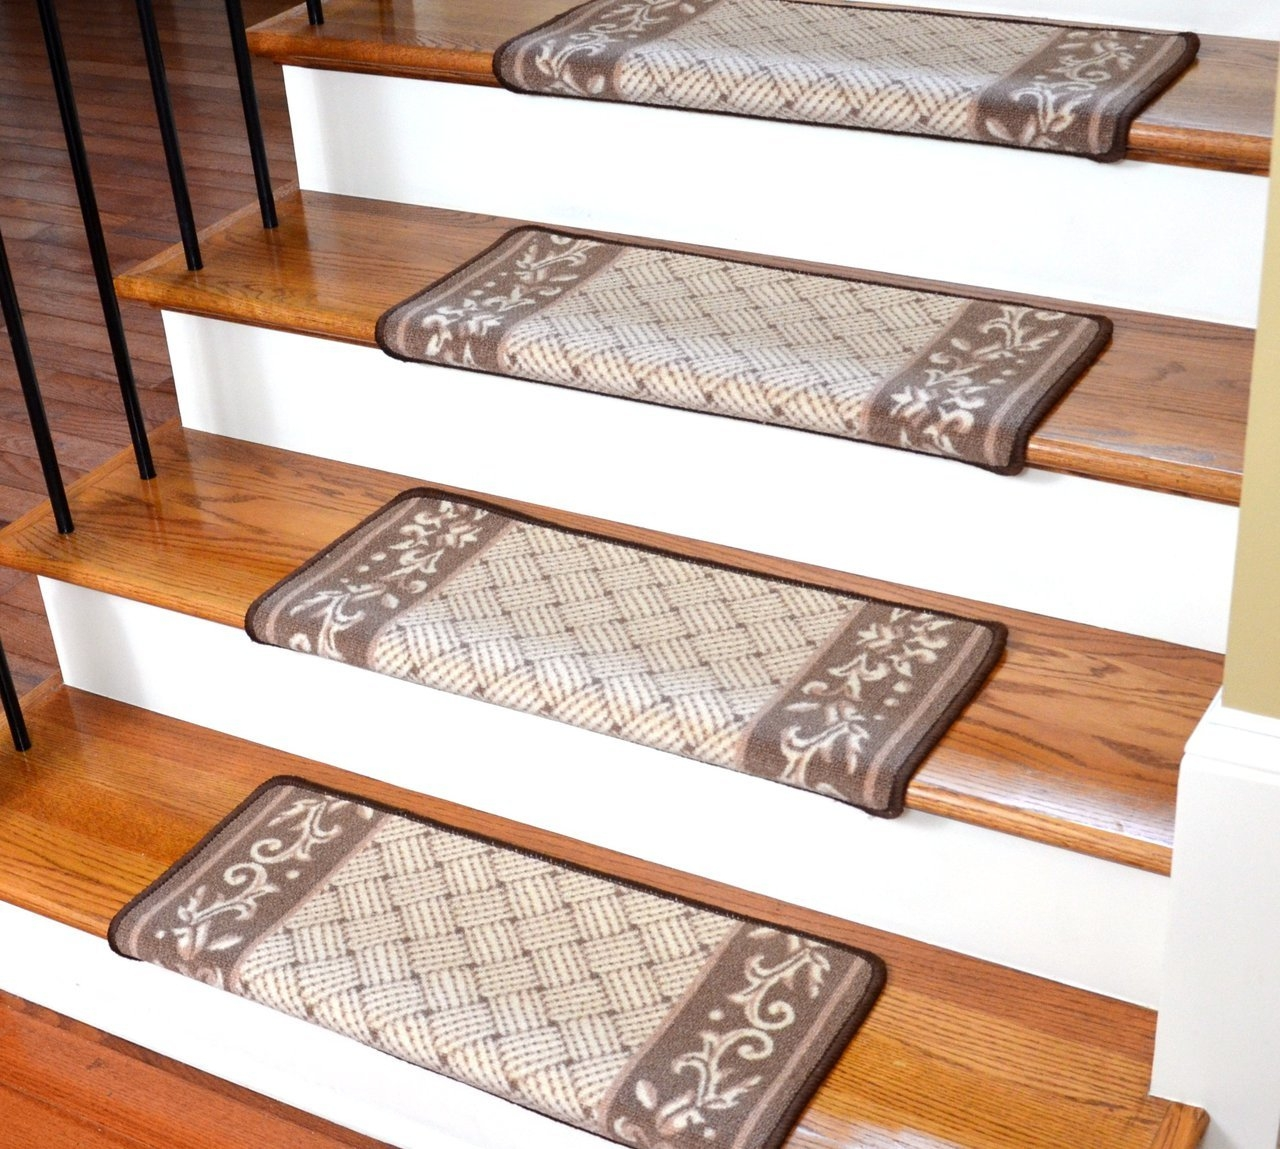 Accessories Nice Oriental Rugs Traditional Stair Tread And Inside Stair Treads Landing Rug (Image 1 of 15)